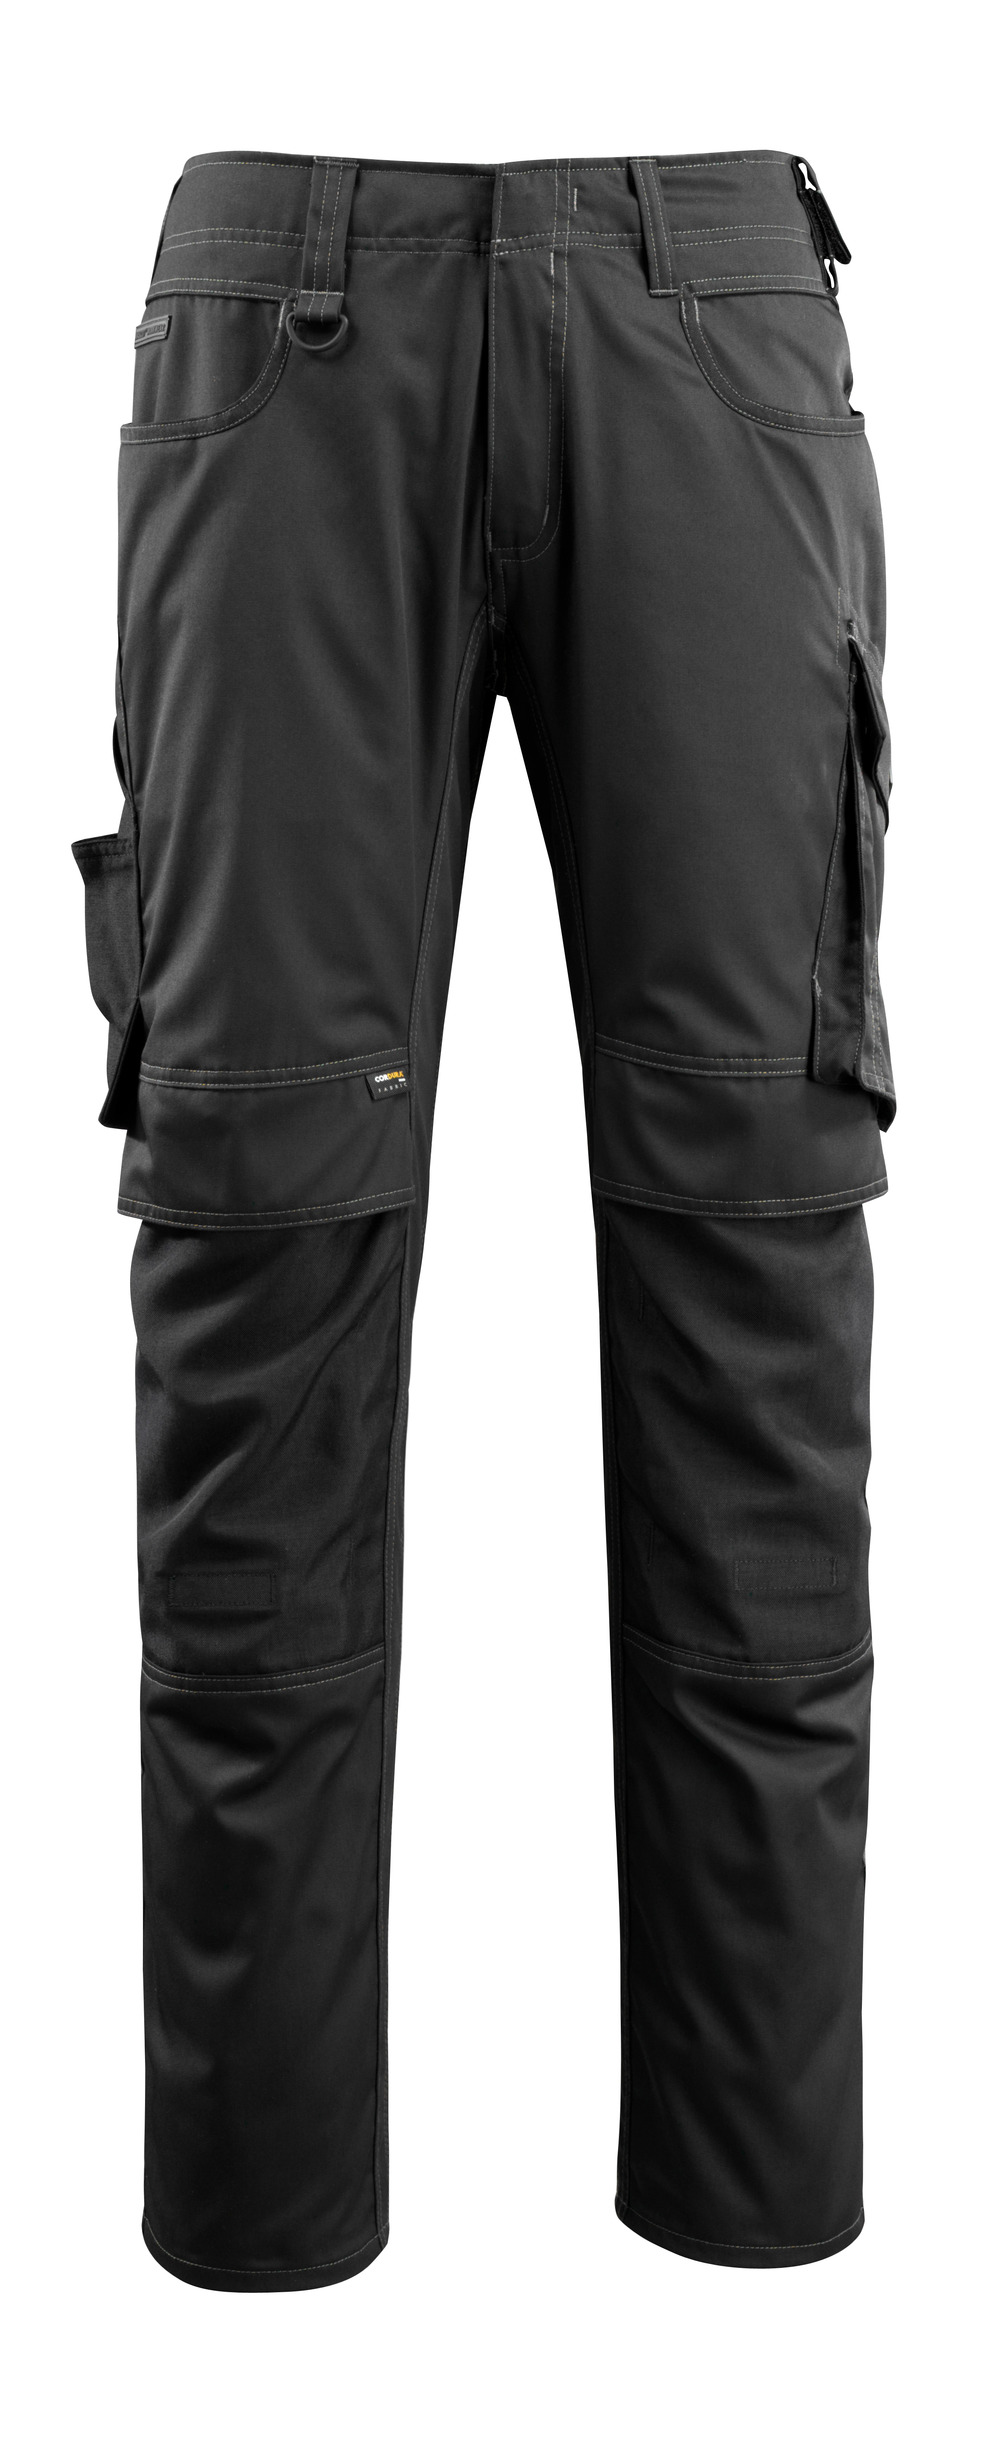 16079-230-09 Trousers with kneepad pockets - black